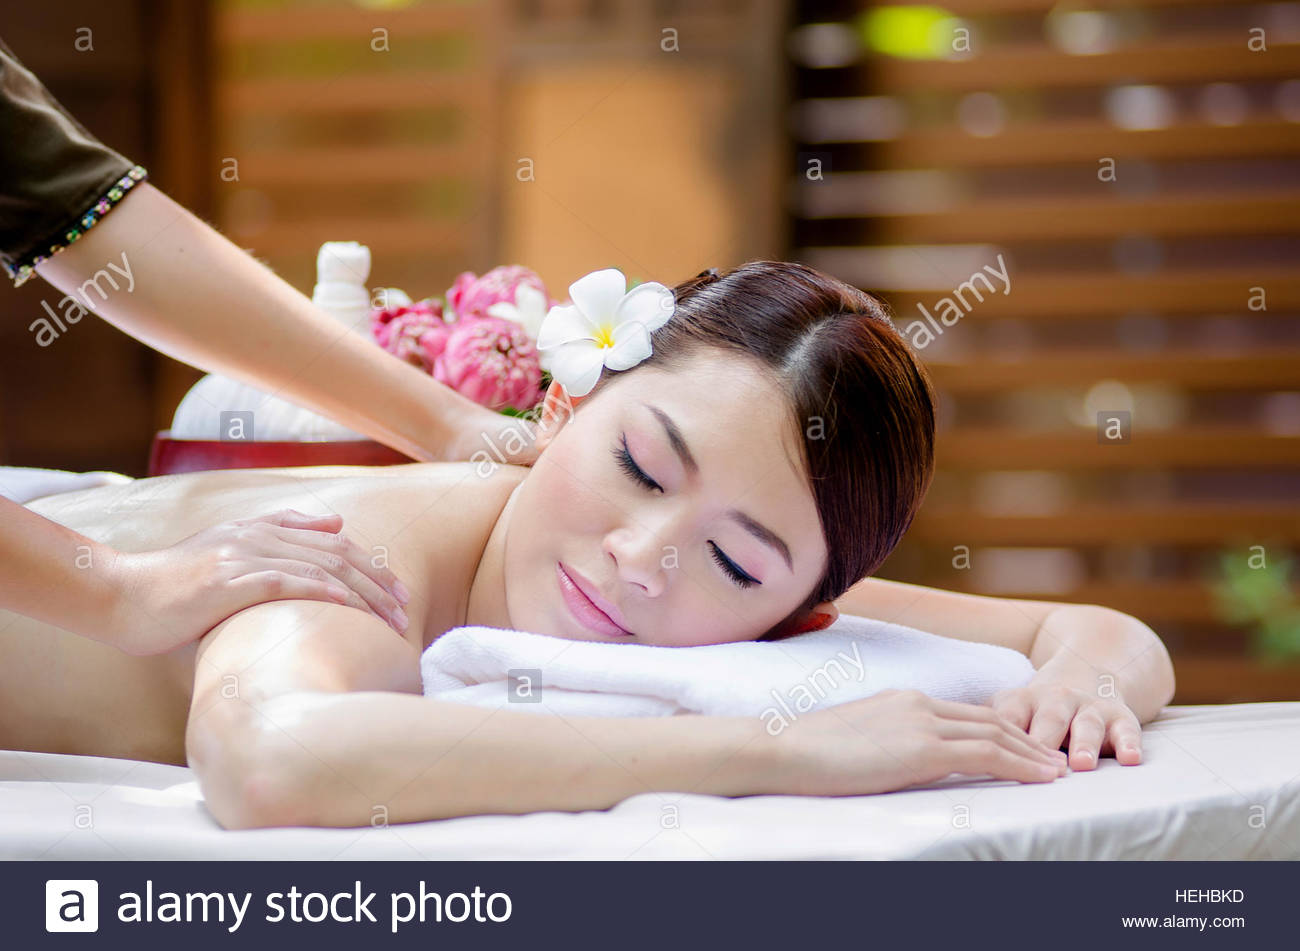 Erotic massage to restore harmony in the family: types and techniques of erotic massage 45